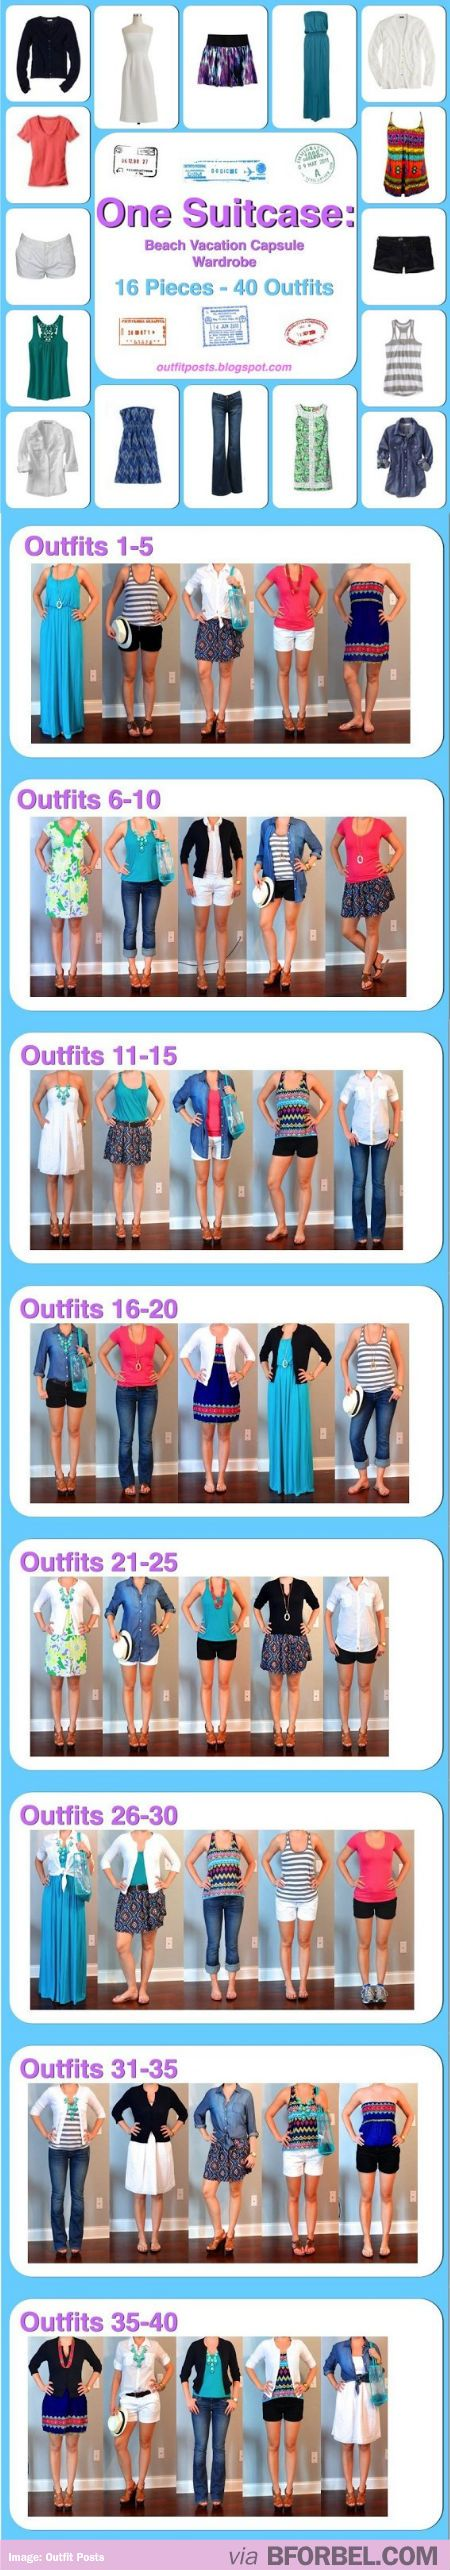 Beach vacation suitcase packing.  16 pieces to create 40 outfits.  I don't like all of these pieces but would be a good template/outfit ideas for mix & match.